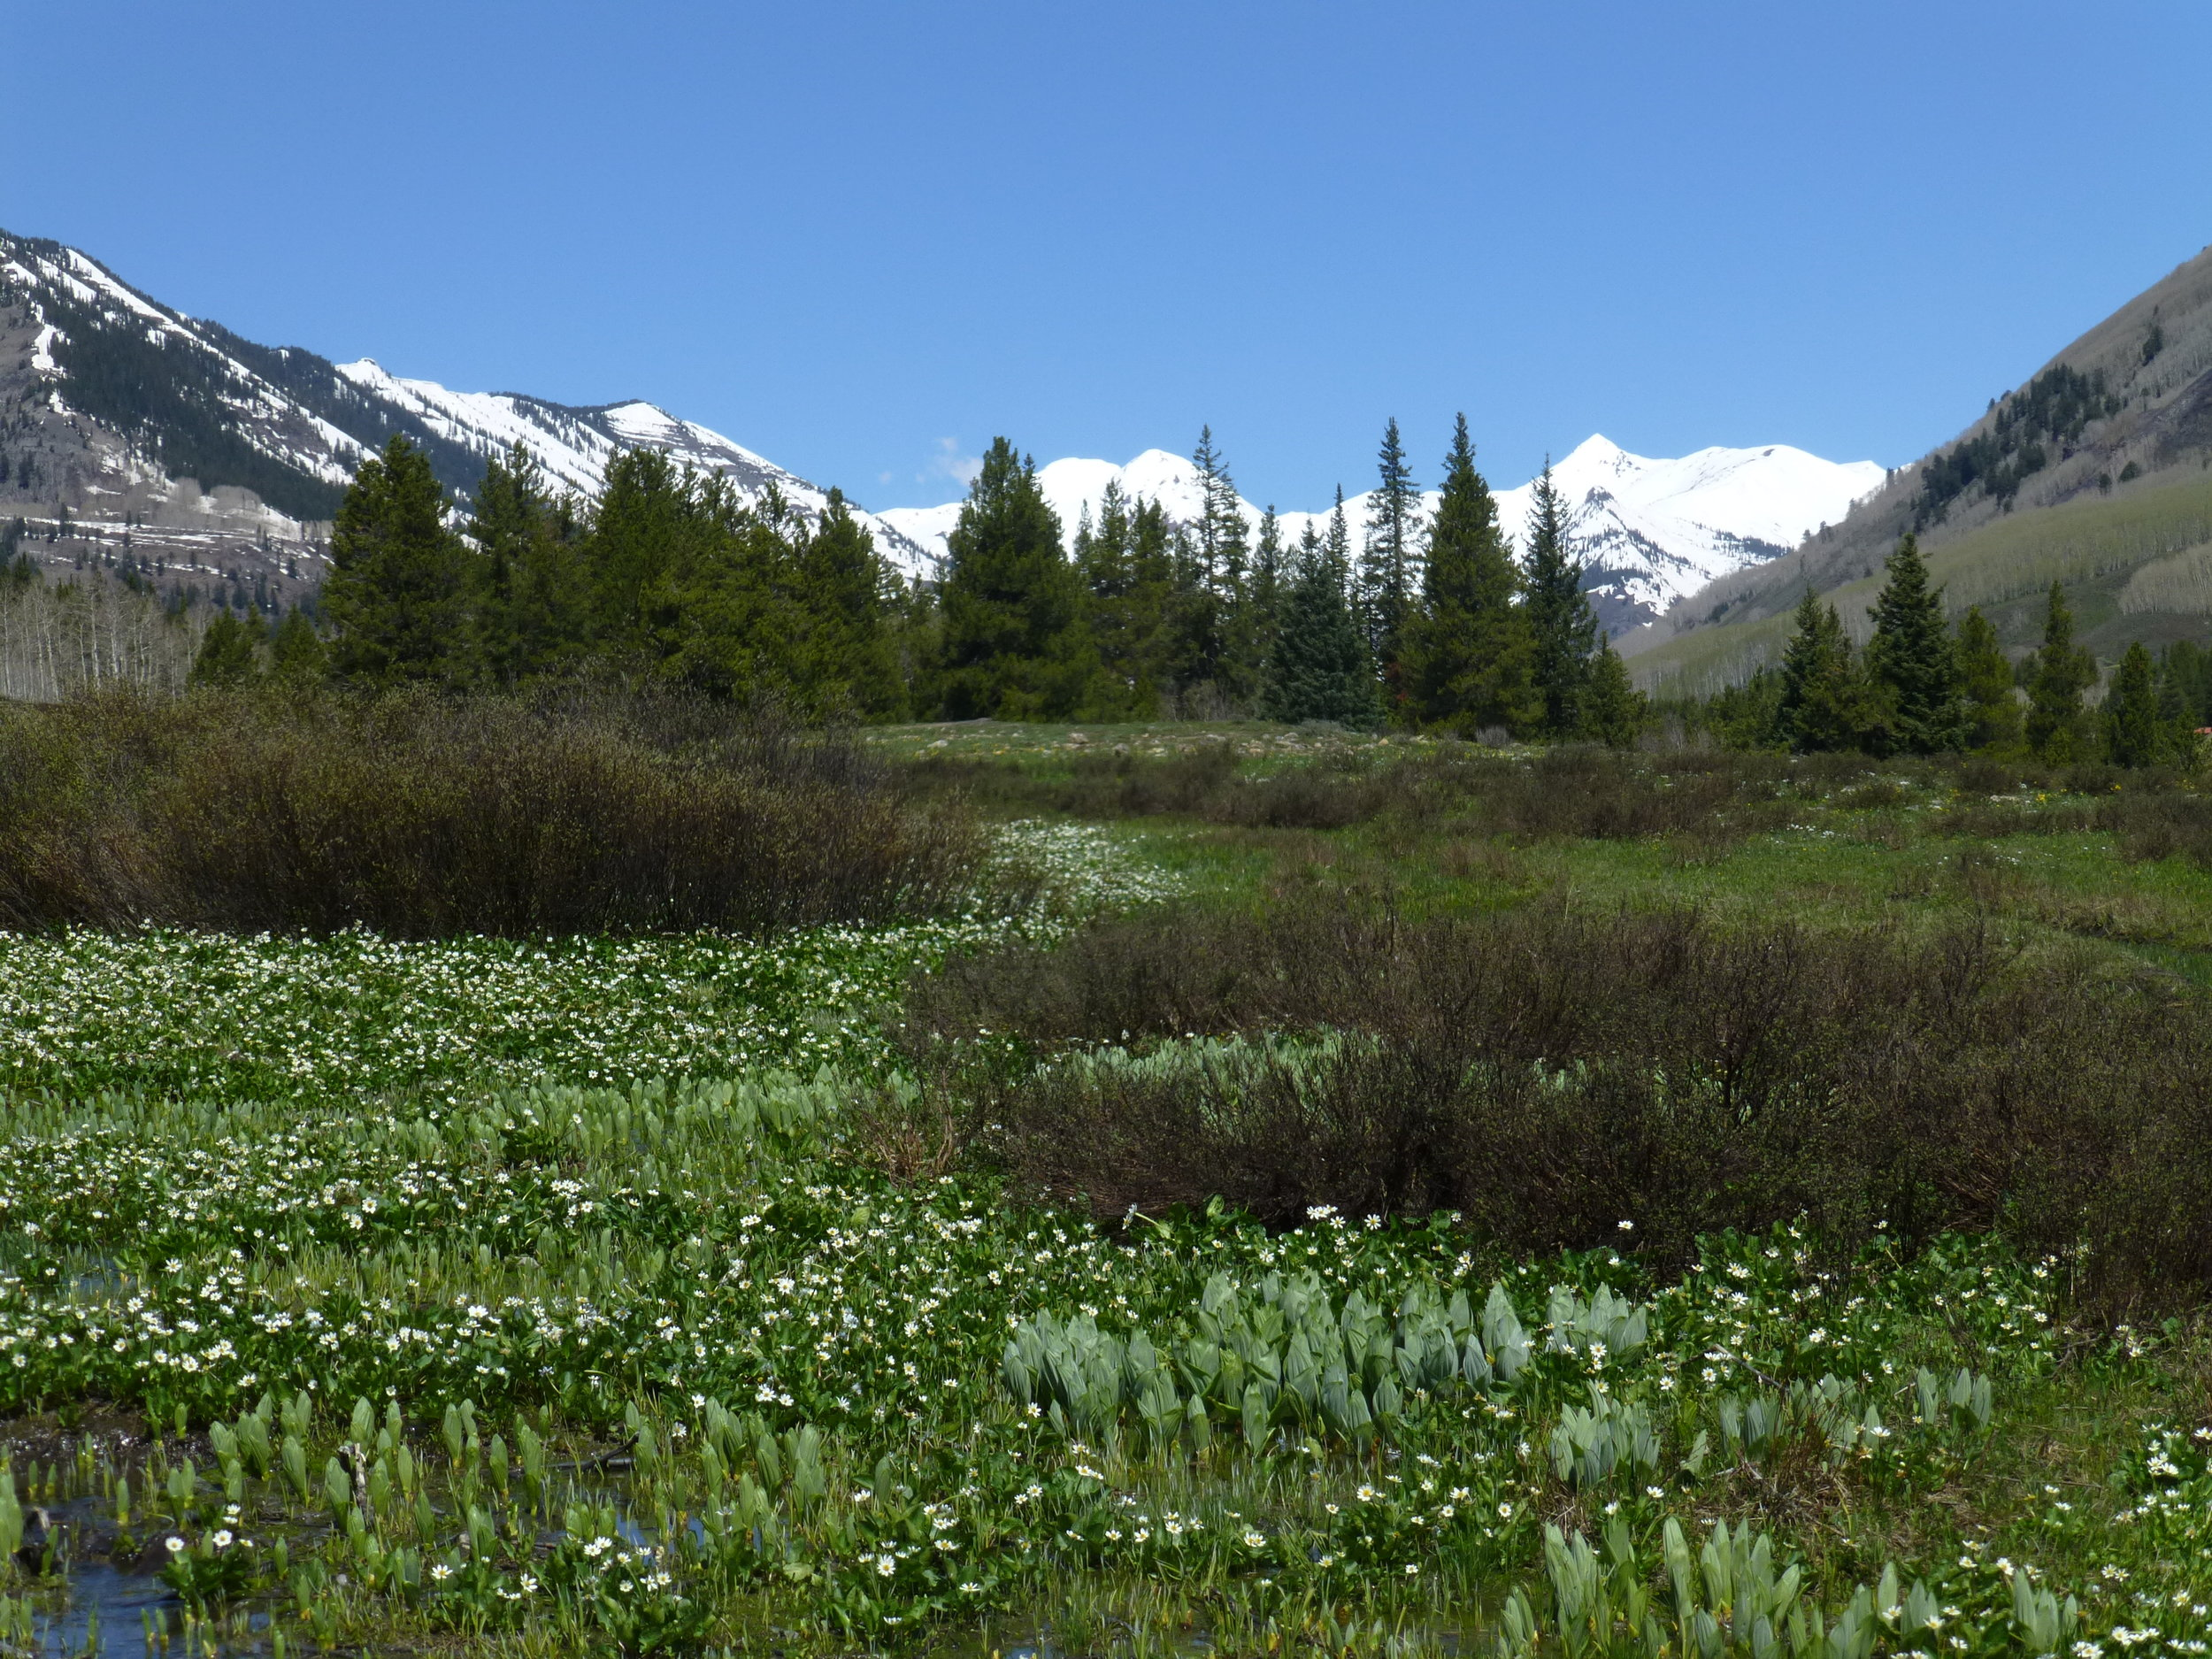 Slate River Valley, Crested Butte